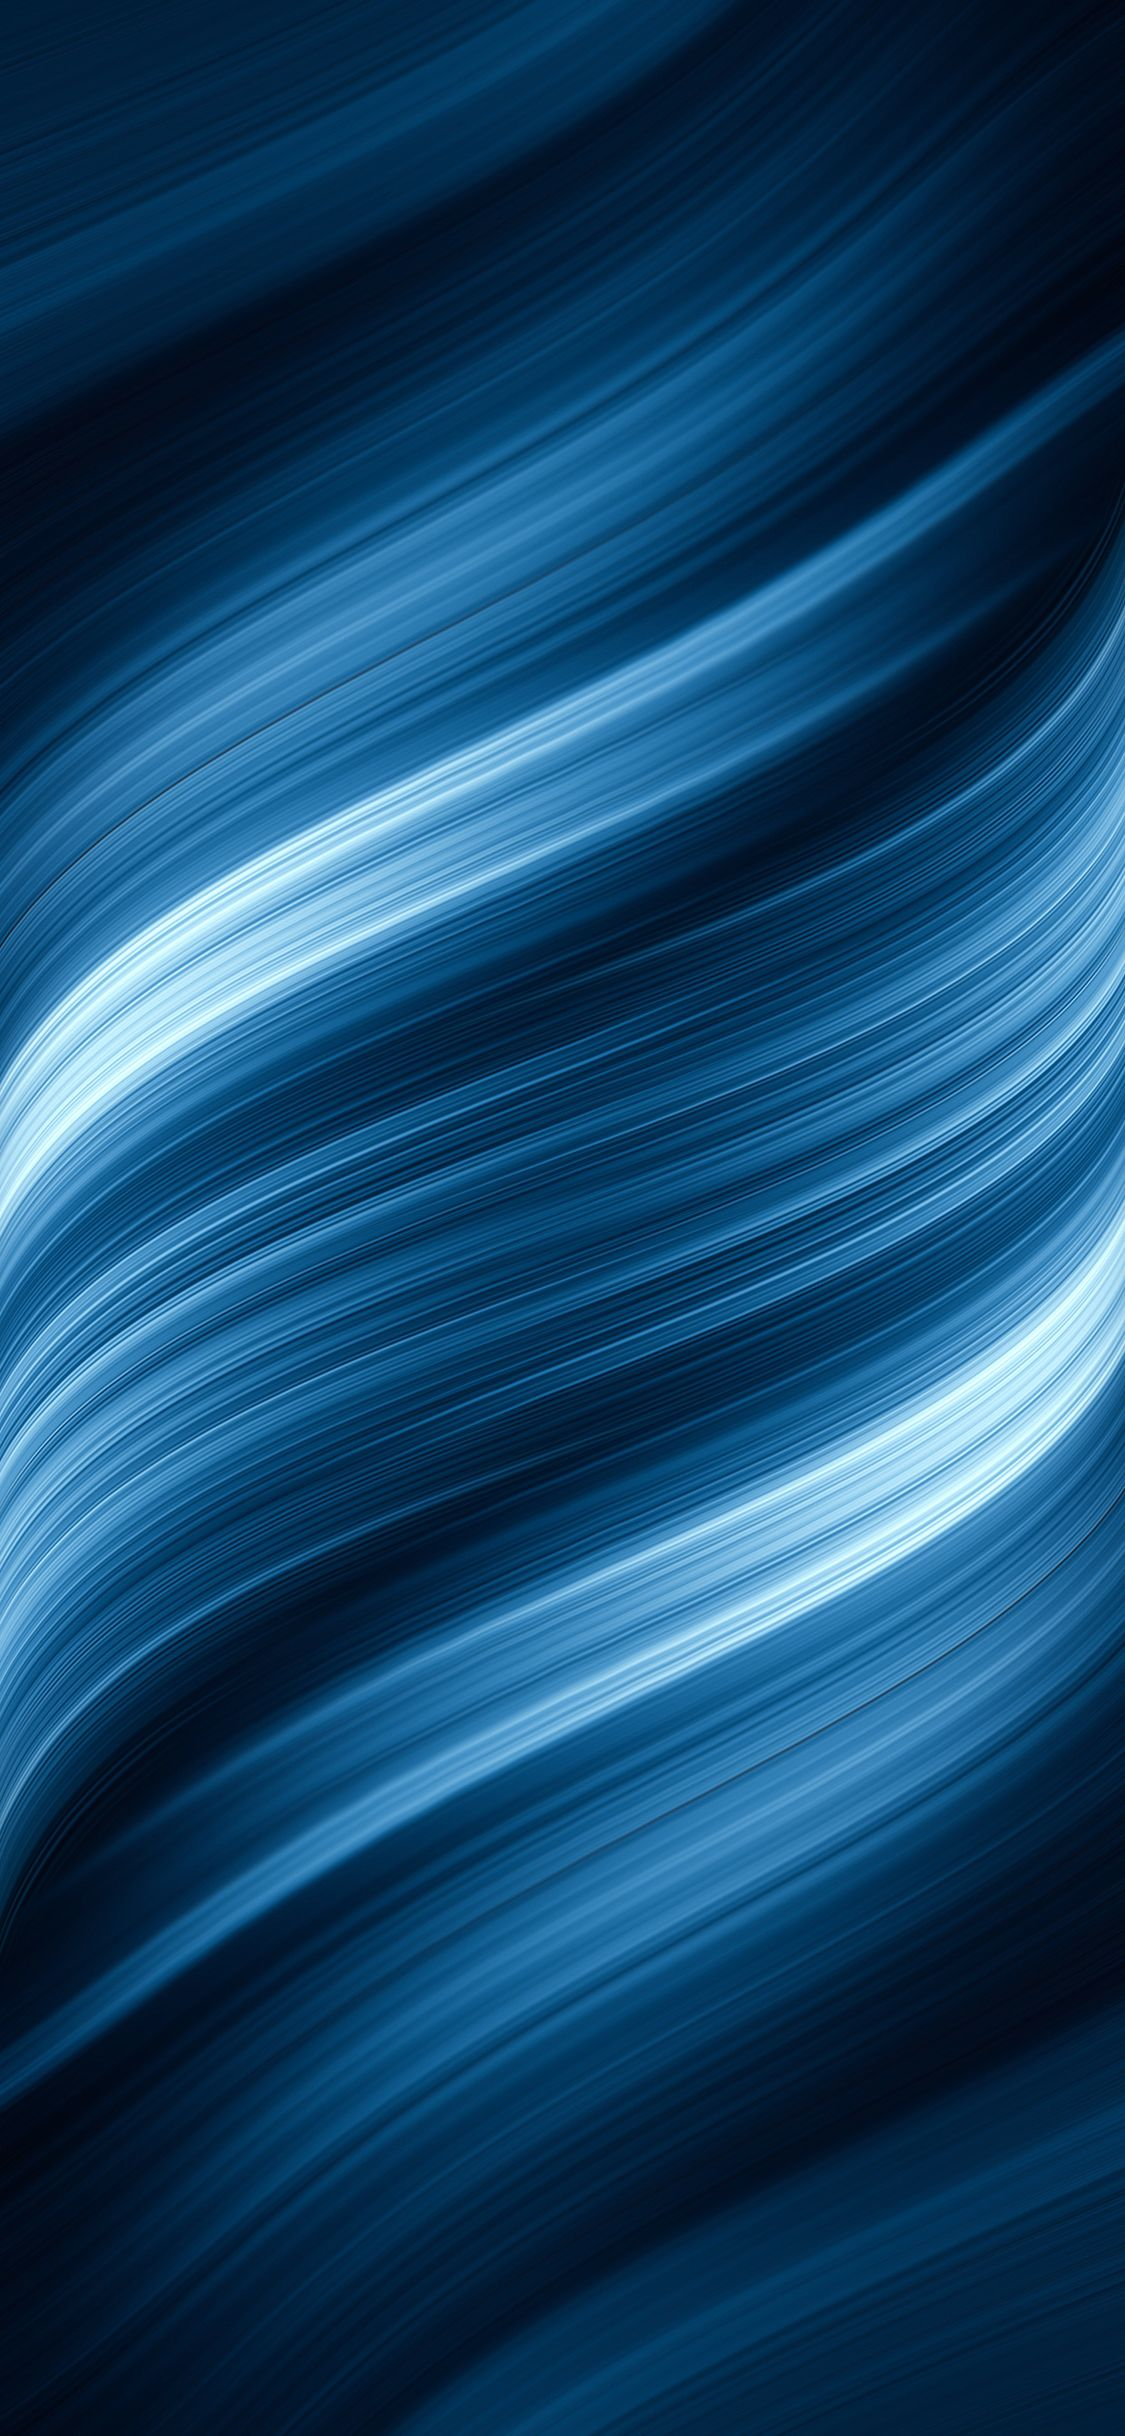 Best Wallpaper For Iphone 11 Pro Max Ytechb Com In 2020 Best Iphone Wallpapers Blue Wallpaper Iphone Iphone Wallpaper